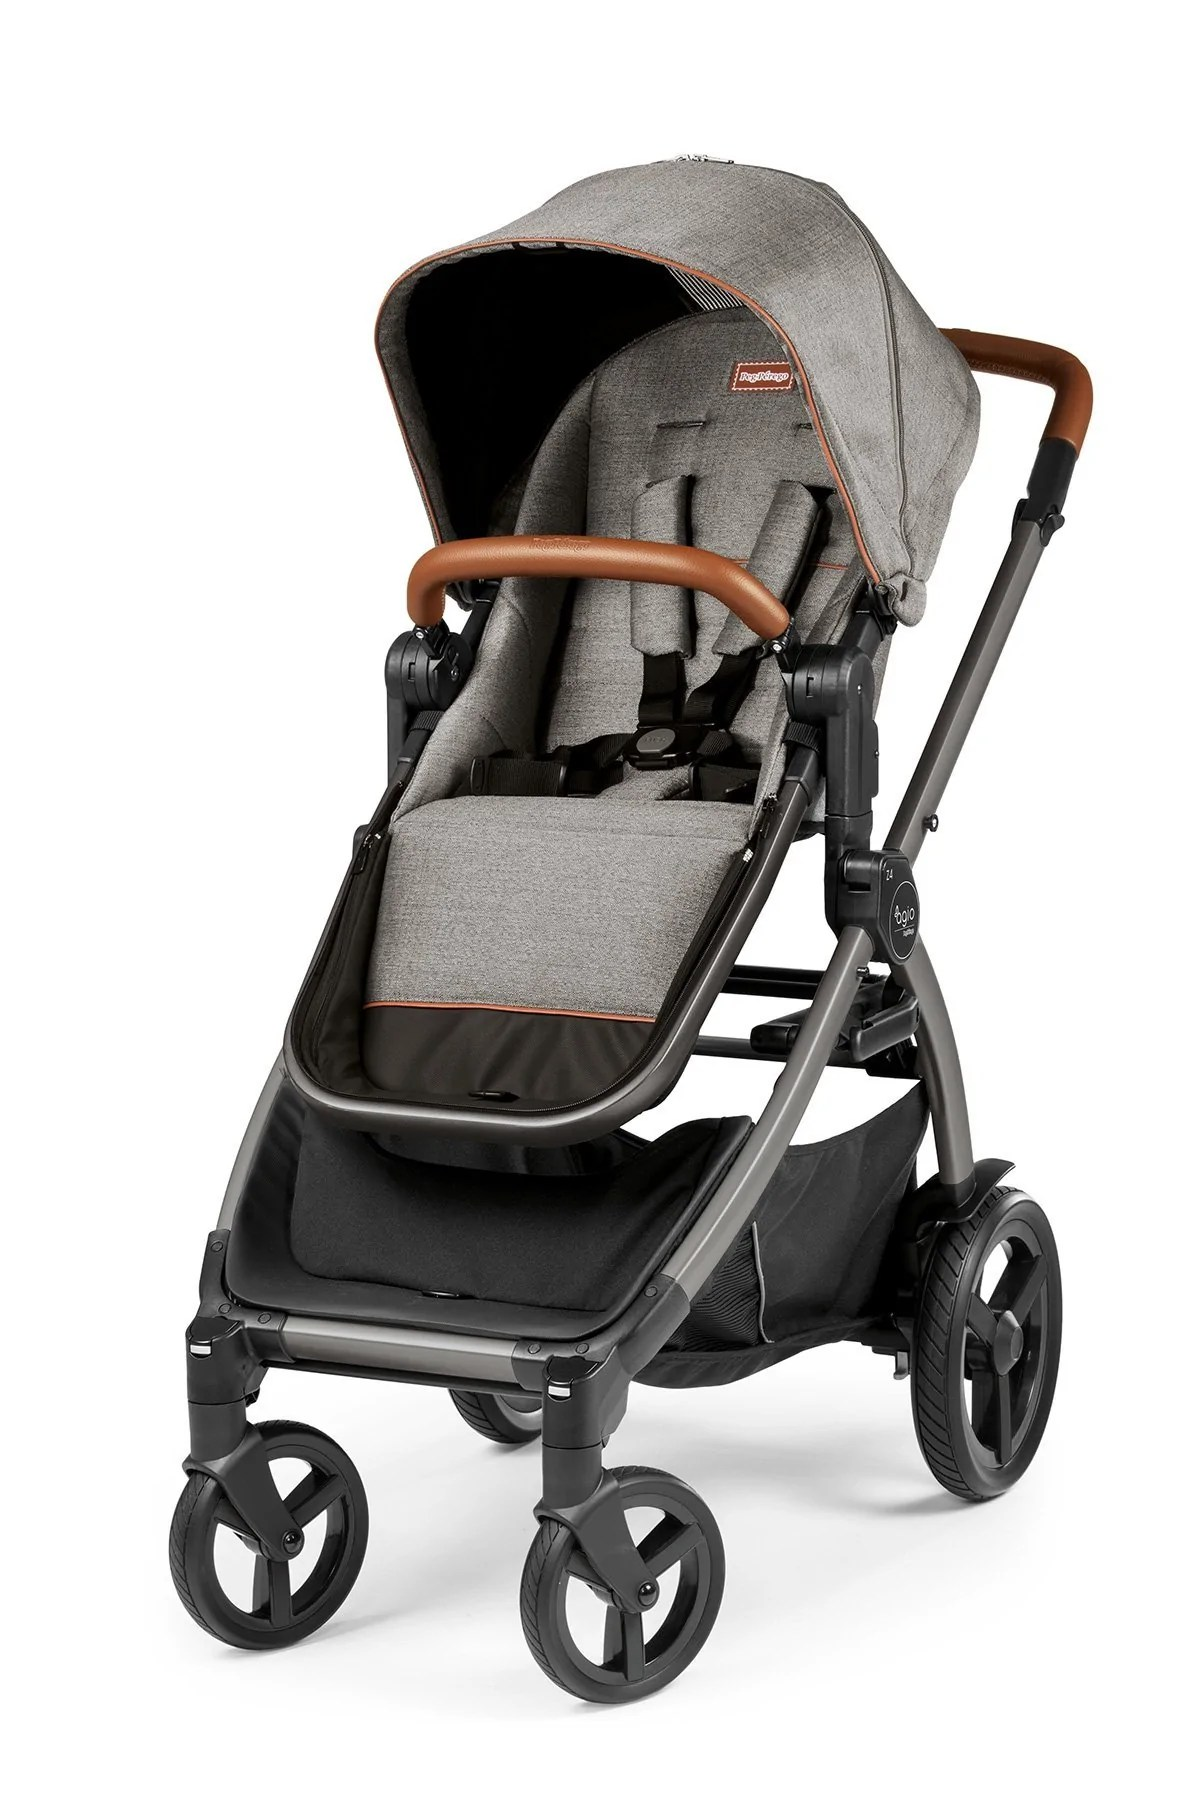 Peg Perego Stroller For Twins Agio By Peg Perego Z4 Full Feature Reversible Stroller